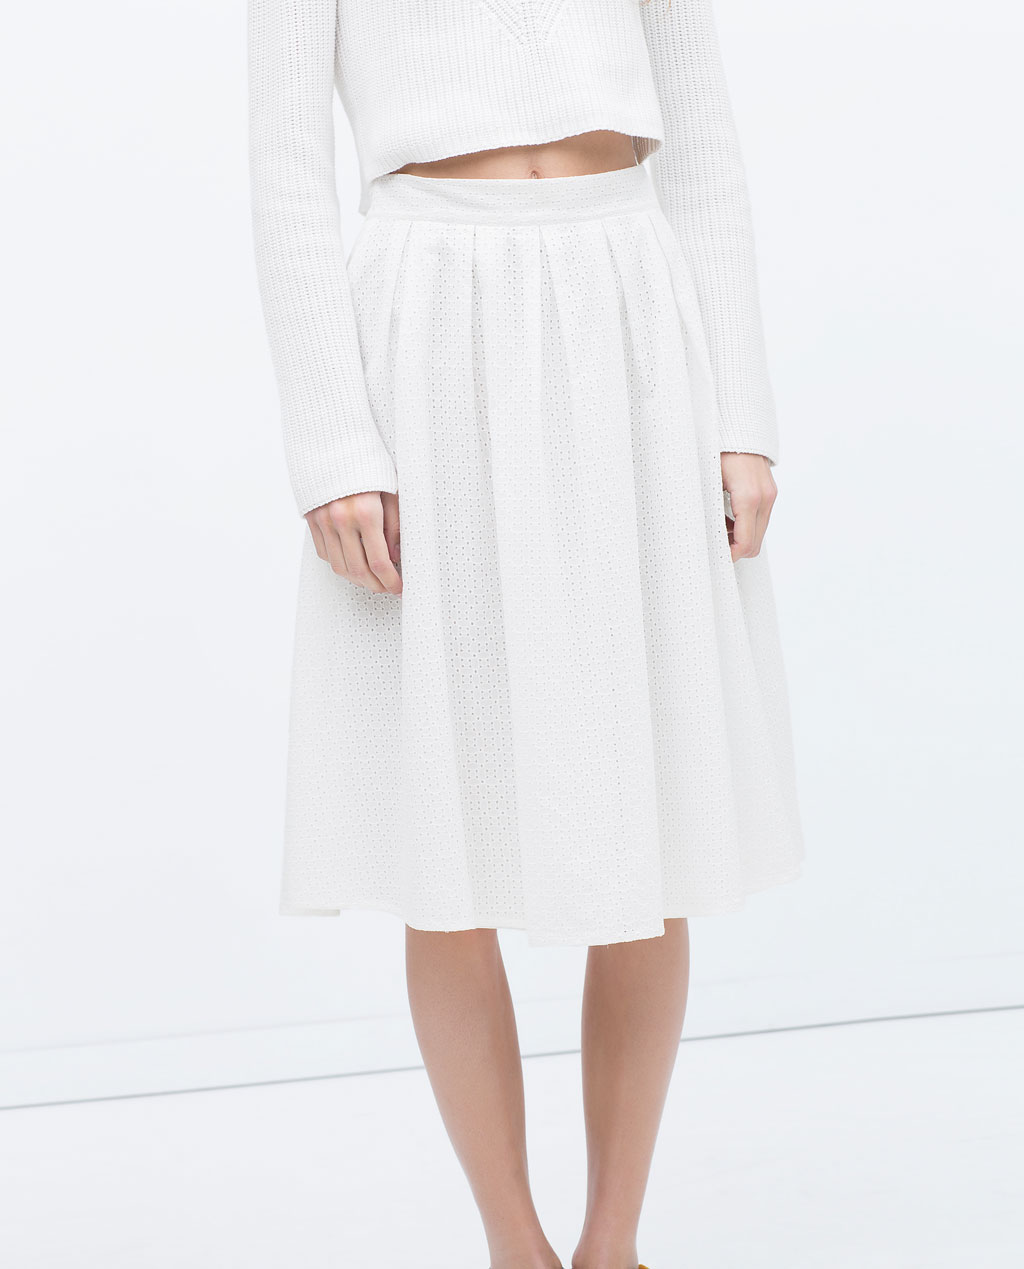 Photo Source: zara.com